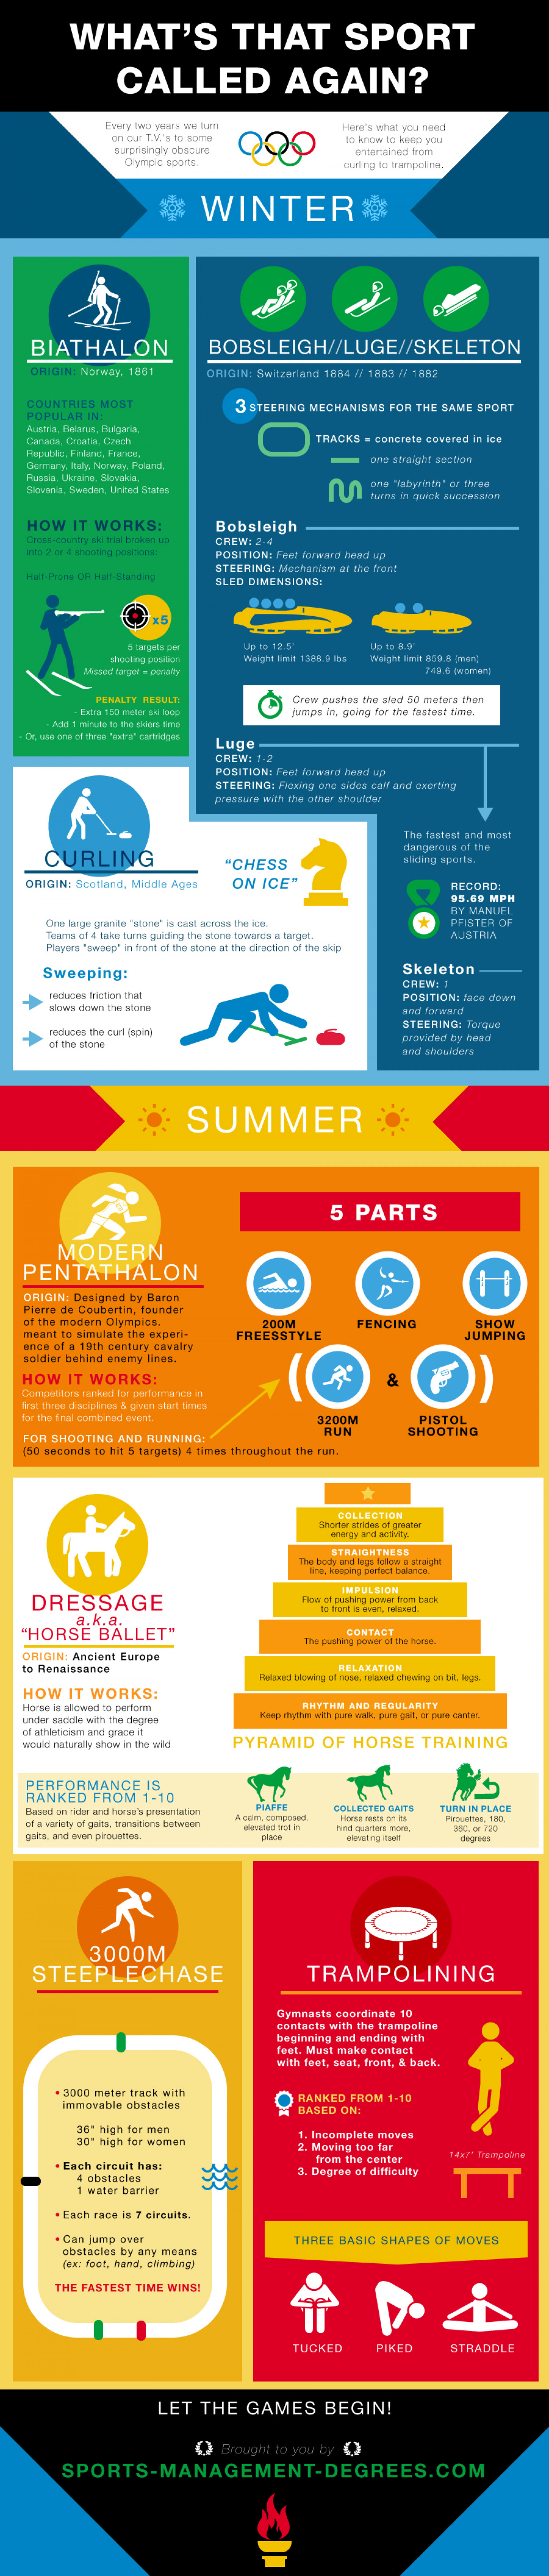 What's That Sport Called Again? Infographic